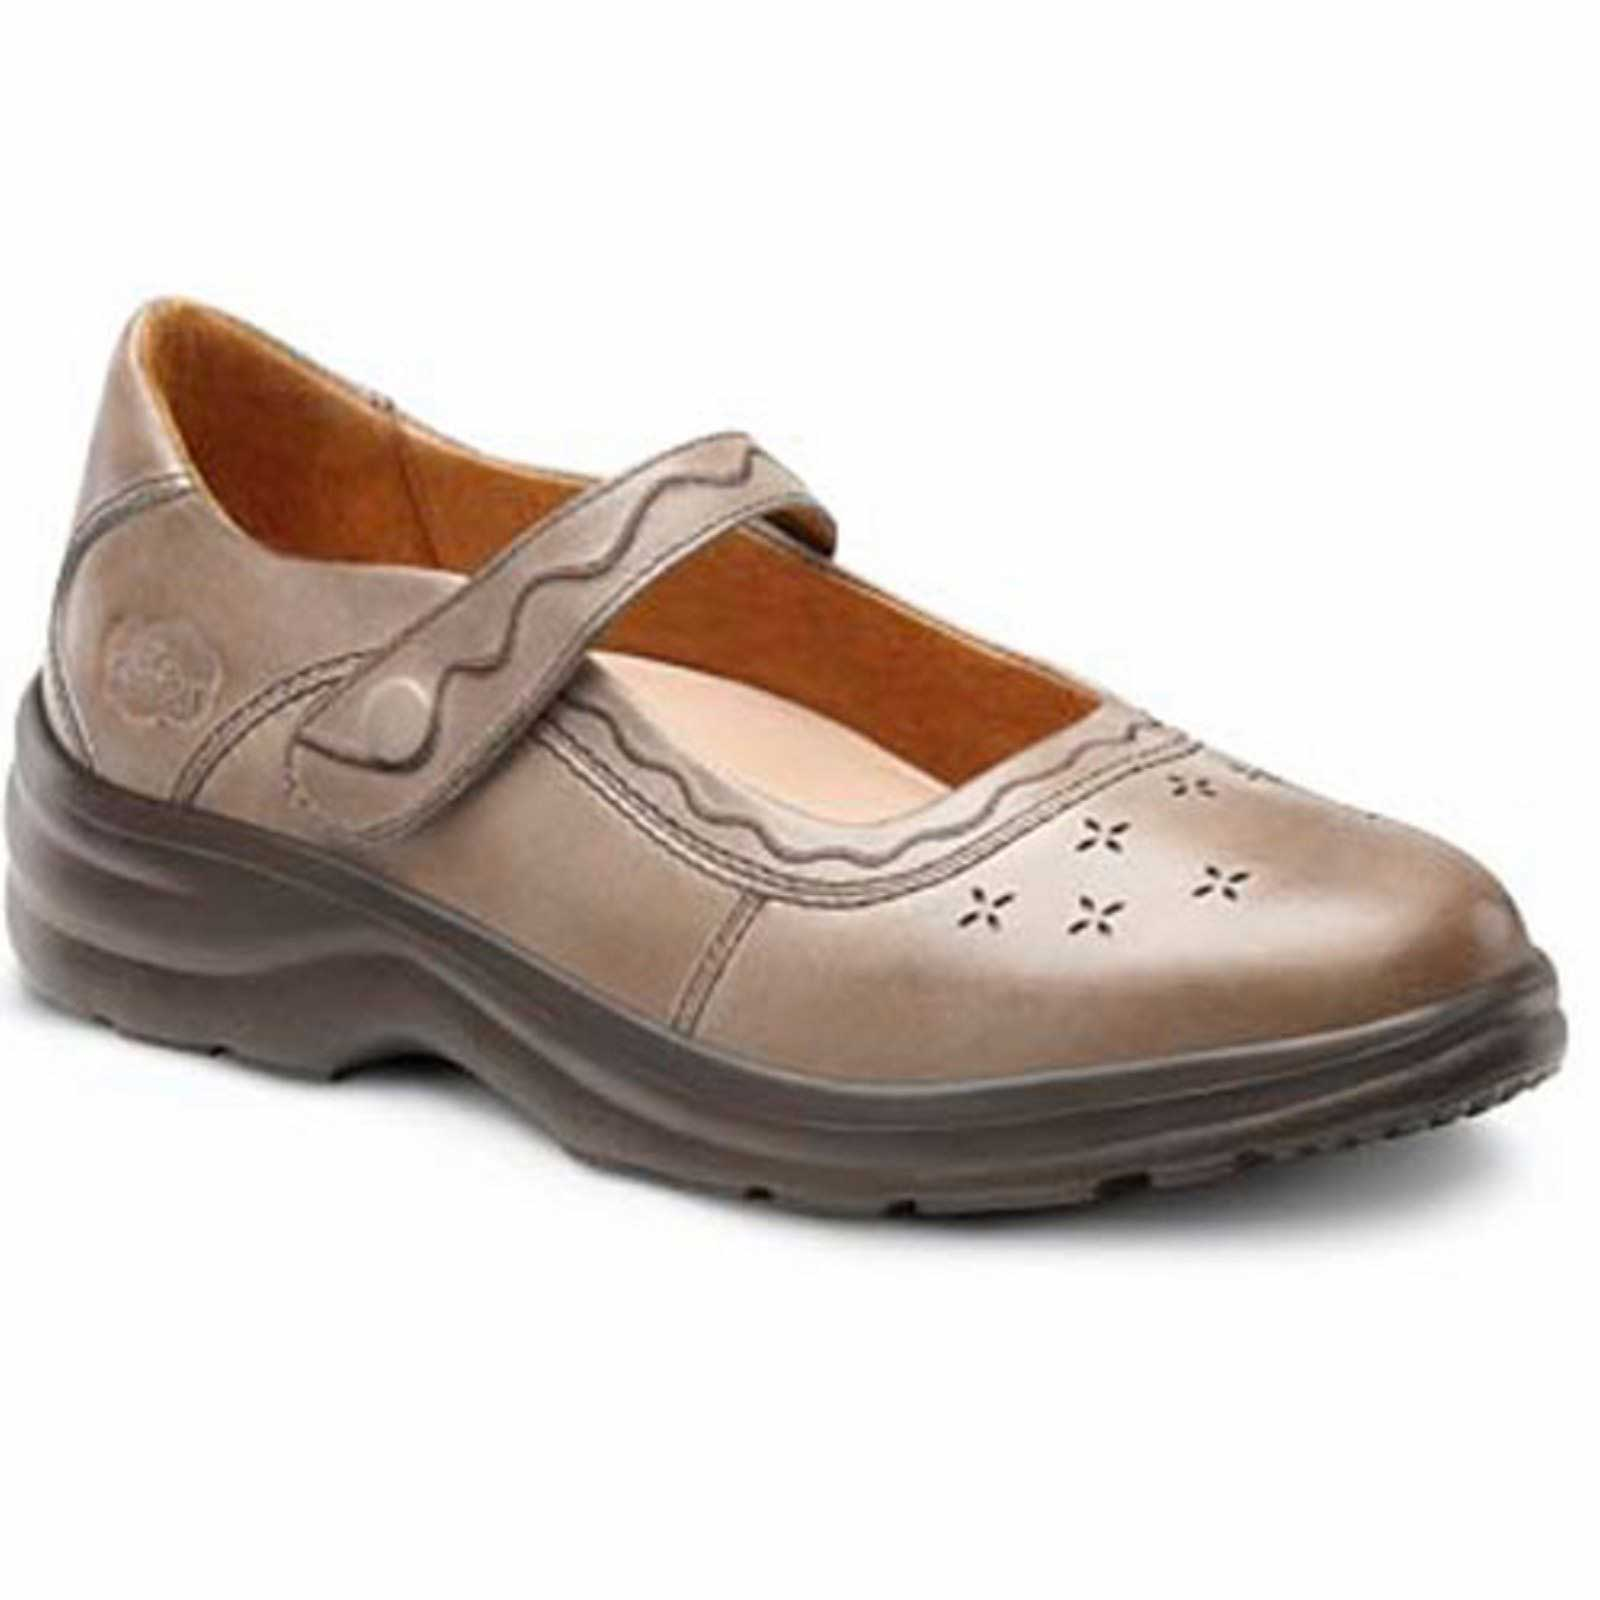 Dr Comfort Shoes - Sunshine - Women's Therapeutic Diabetic Shoe with Gel Plus Inserts - Casual, Dress - Medium (A-B) - Extra Wid at Sears.com